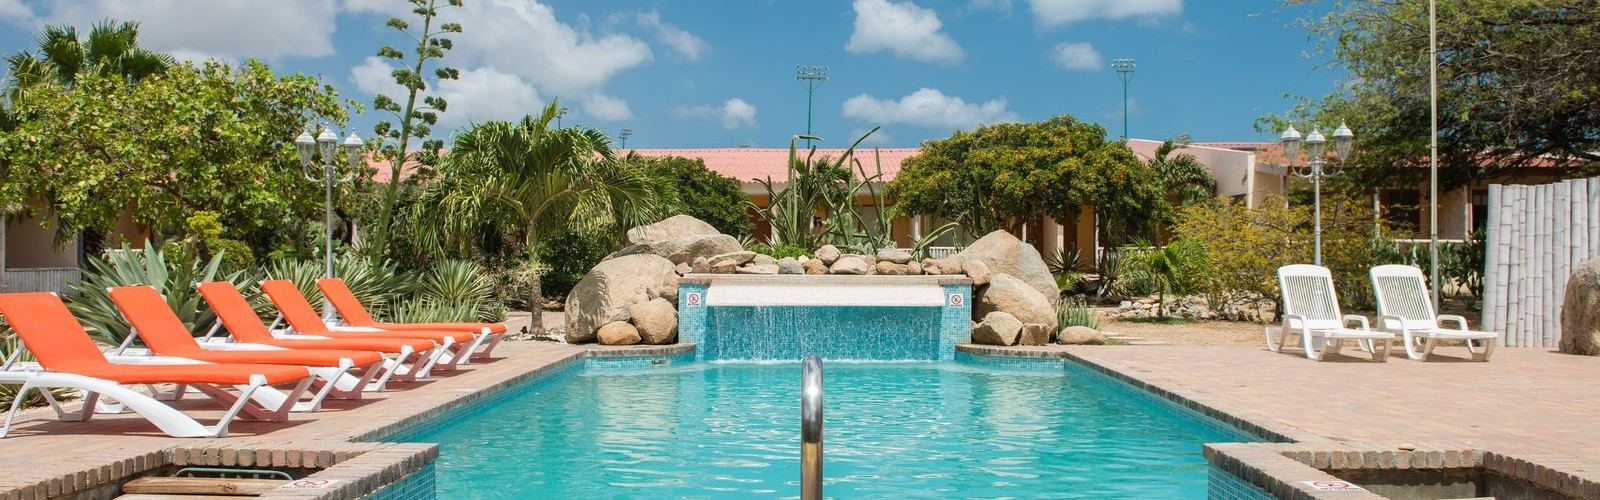 Apartment rates | Camacuri Residence & Apartments Aruba